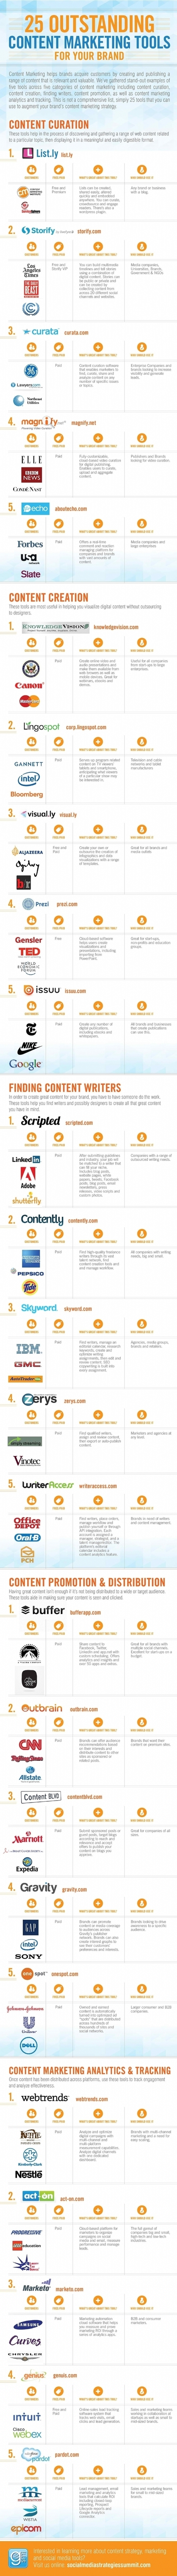 Infographie | 25 outils pour booster votre stratégie de content marketing | Brand Content & Content Marketing | Scoop.it